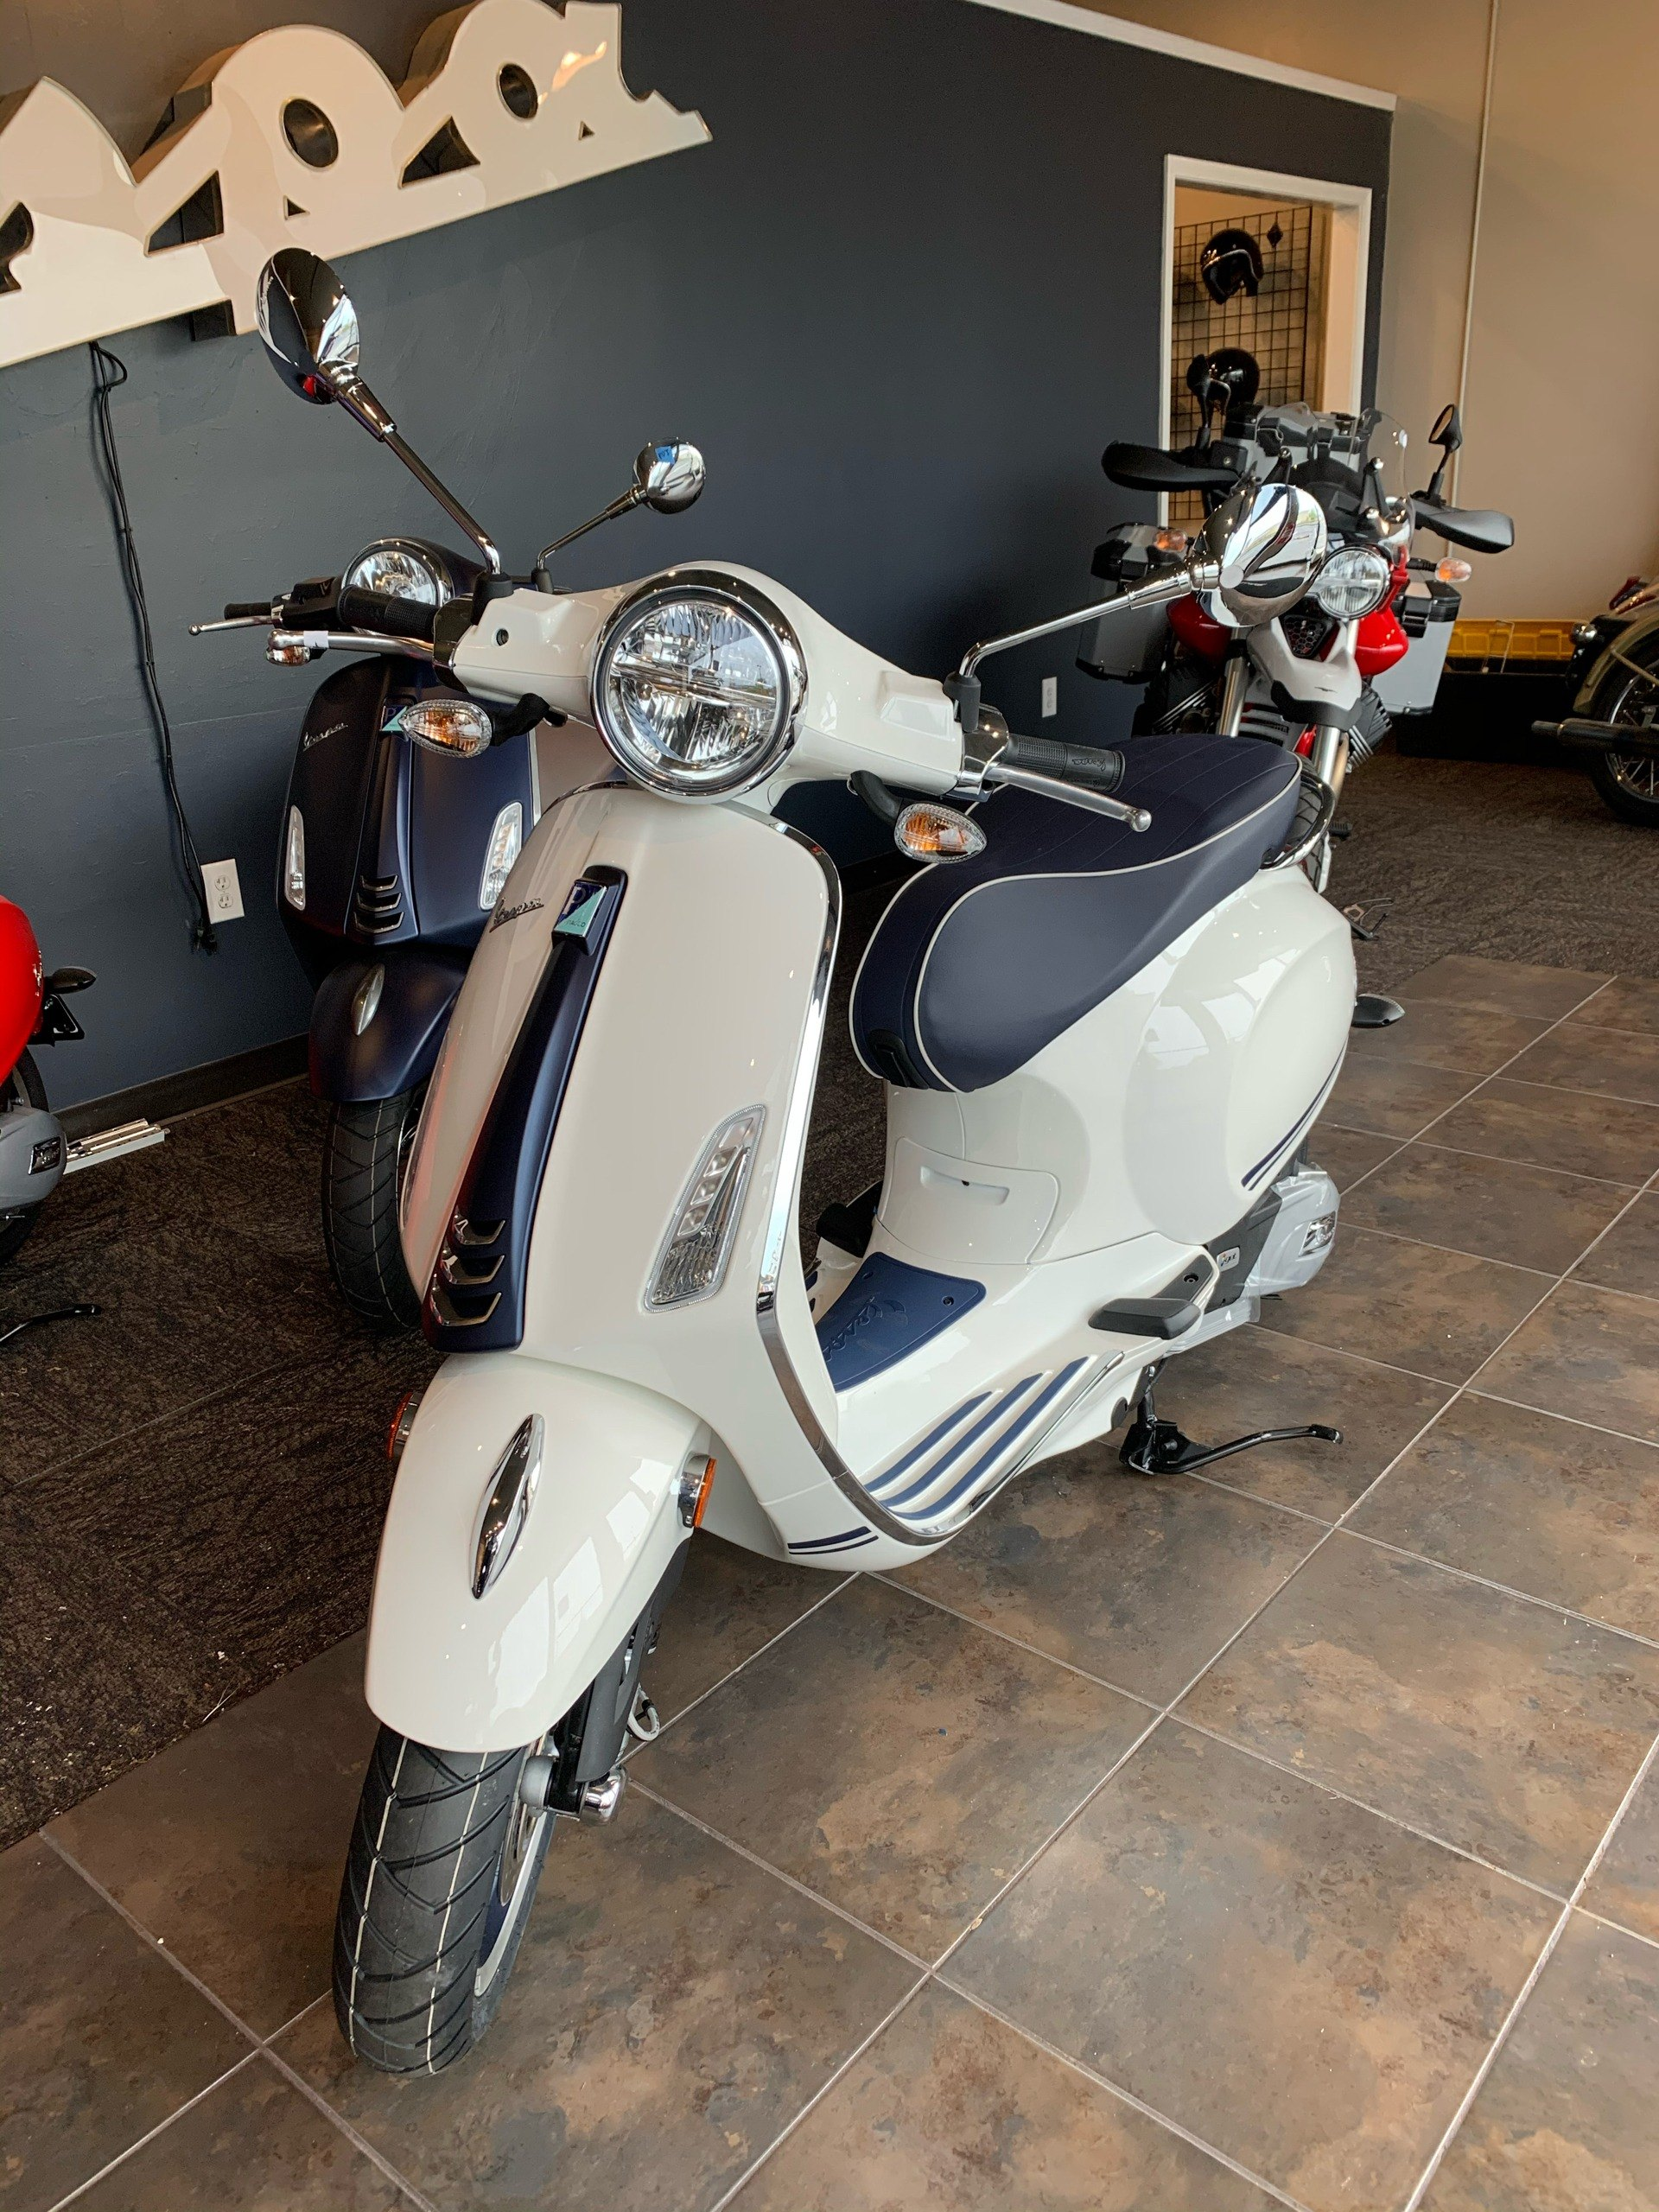 2020 Vespa Primavera 150 Yacht Club in Marietta, Georgia - Photo 1